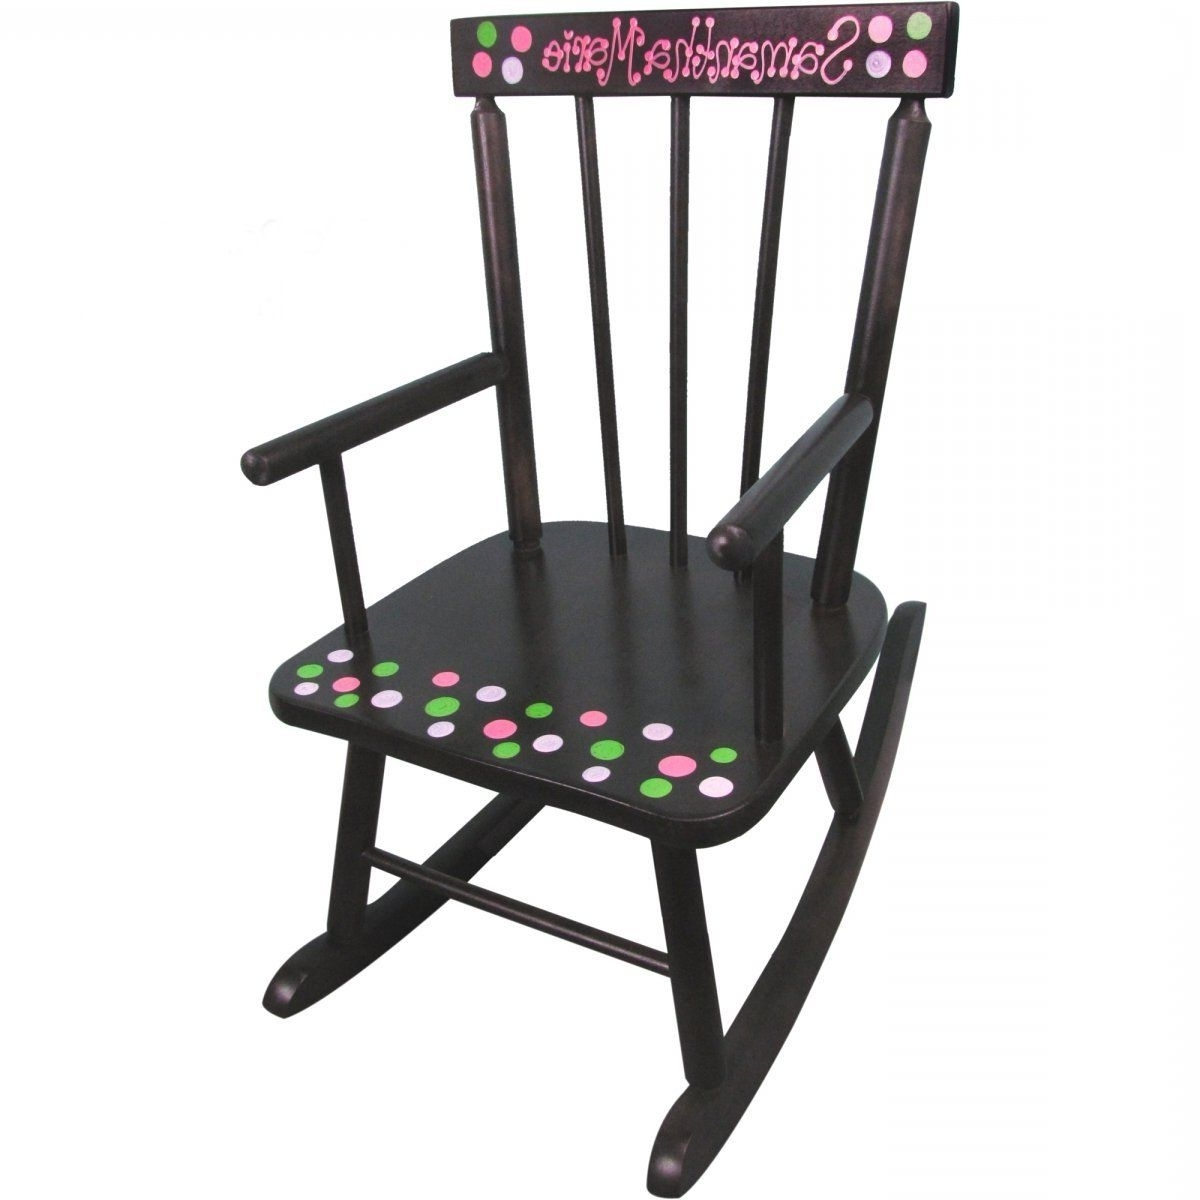 Rocking Chairs For Toddlers Within Newest Stunning Personalized Rocking Chairs Childrens For Kids Pics Style (View 17 of 20)